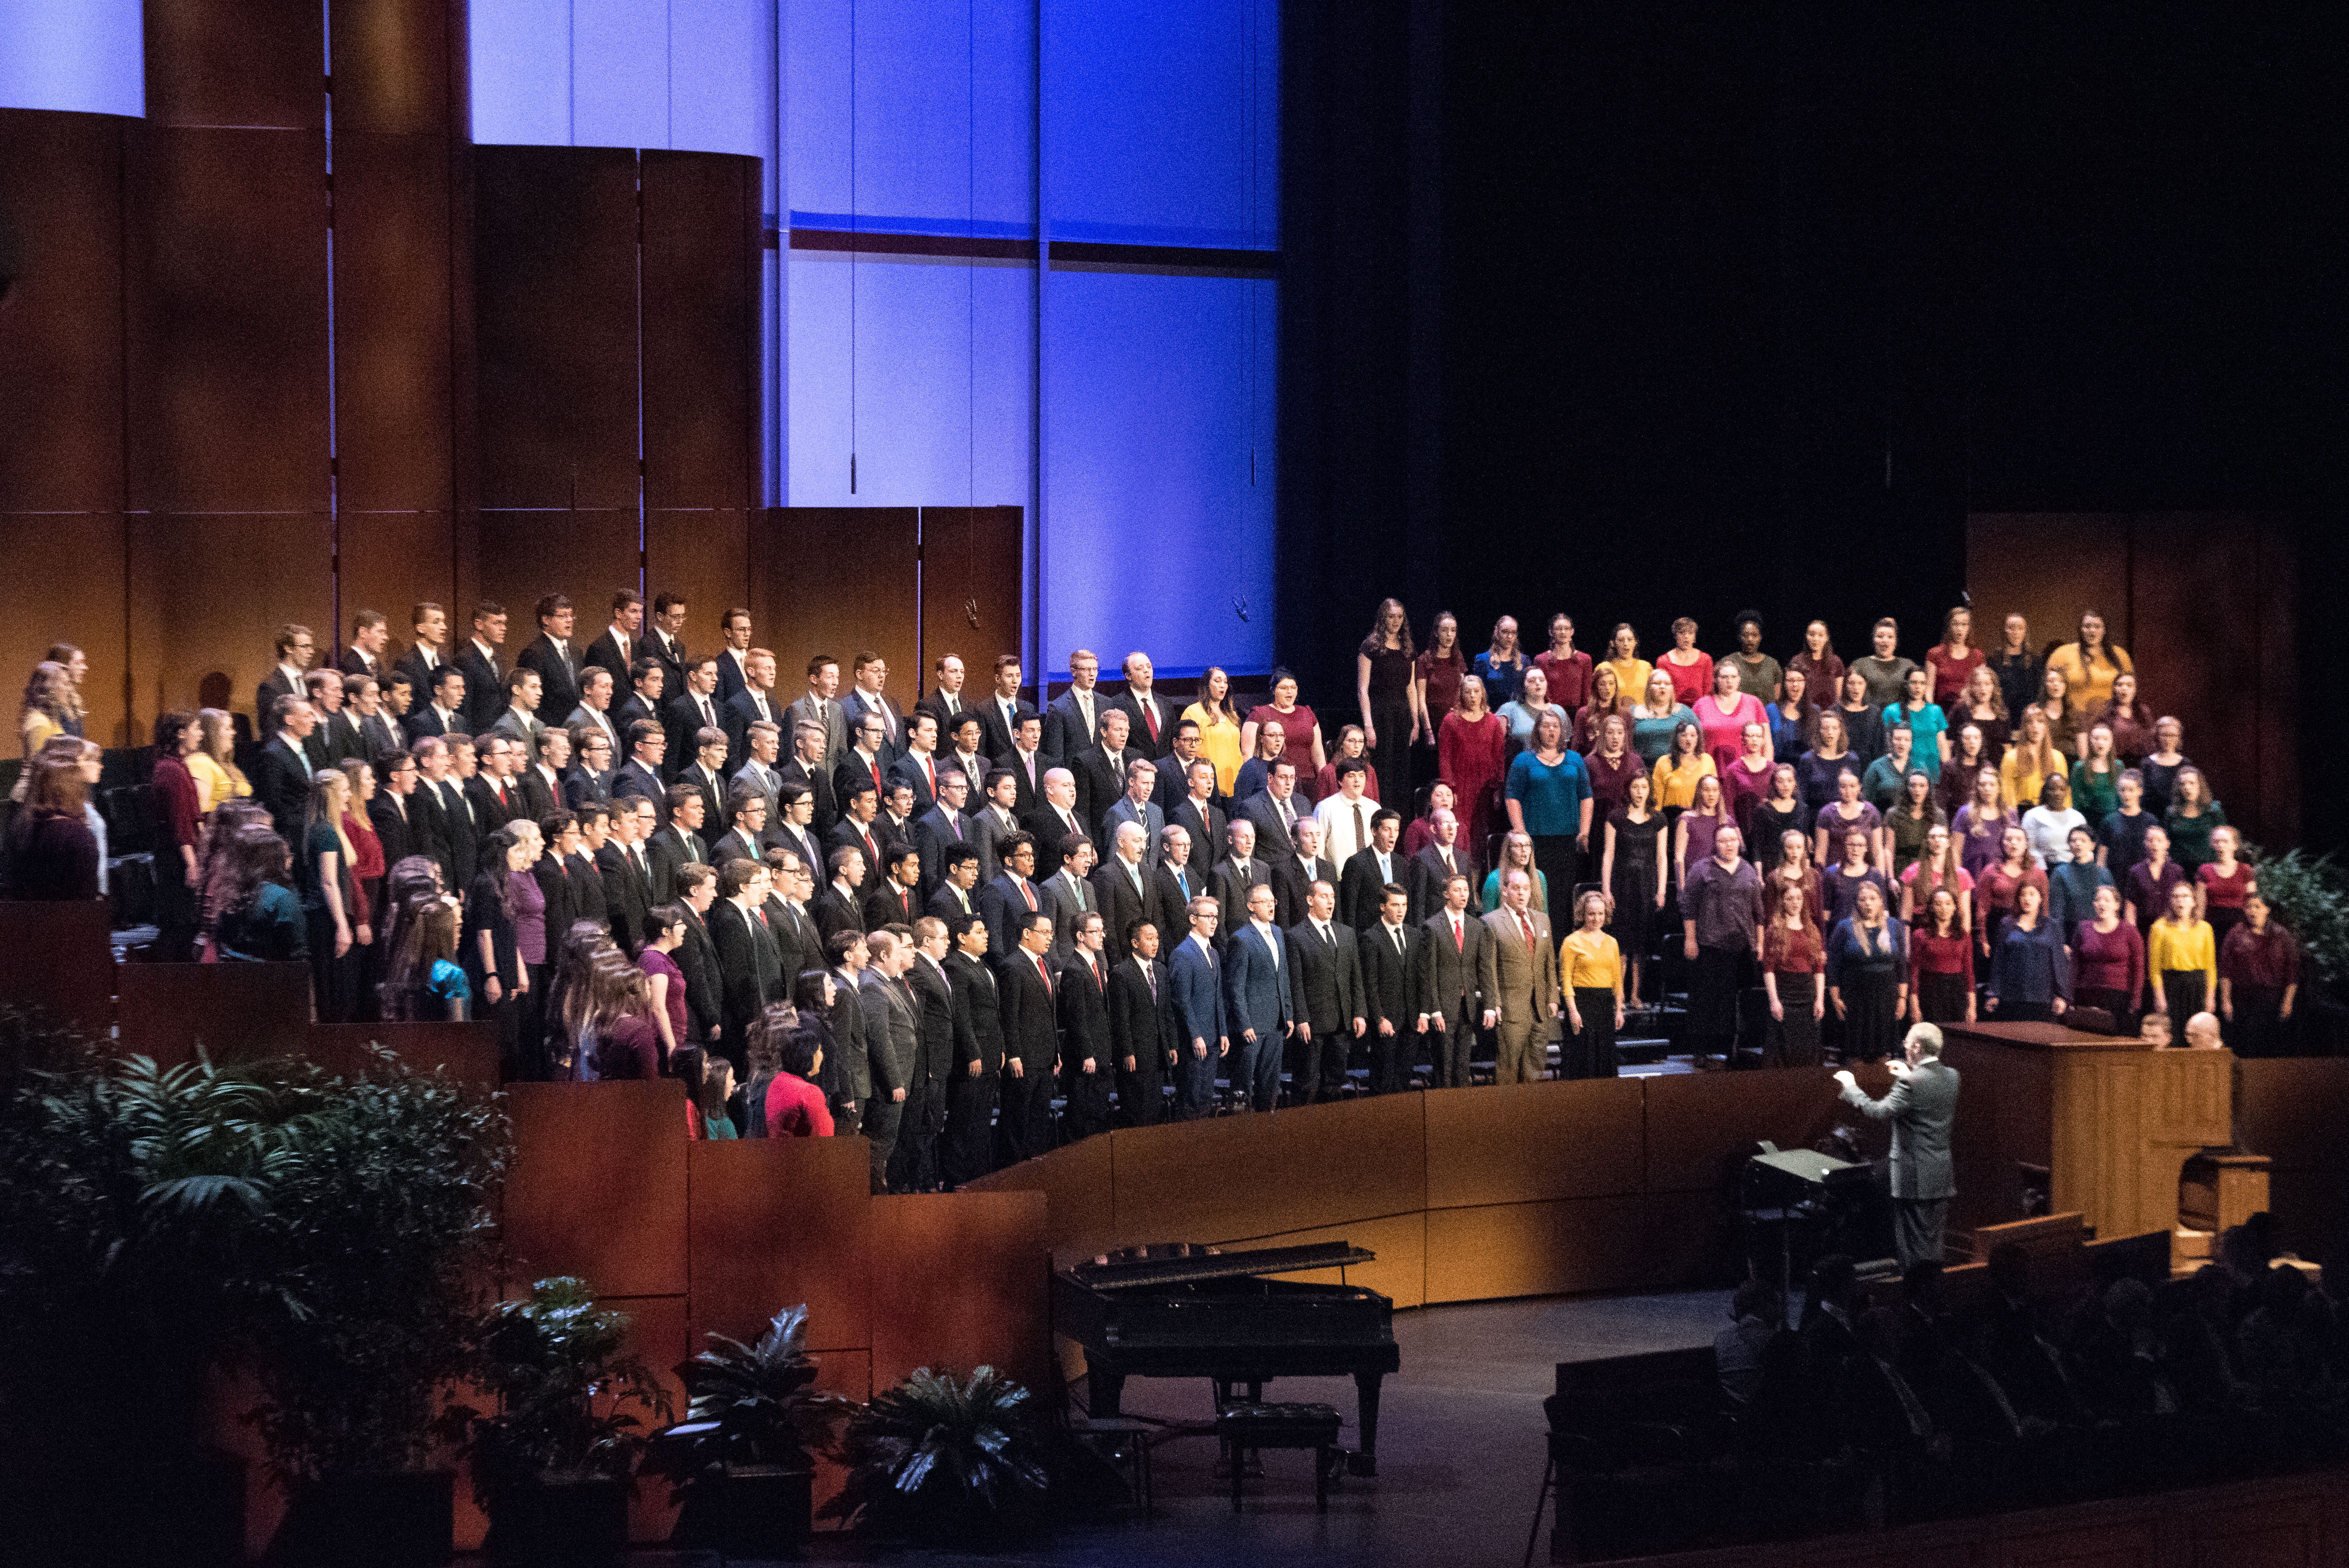 The BYU-Idaho combined choirs perform during a devotional held in the BYU-Idaho Center on April 28, 2019.